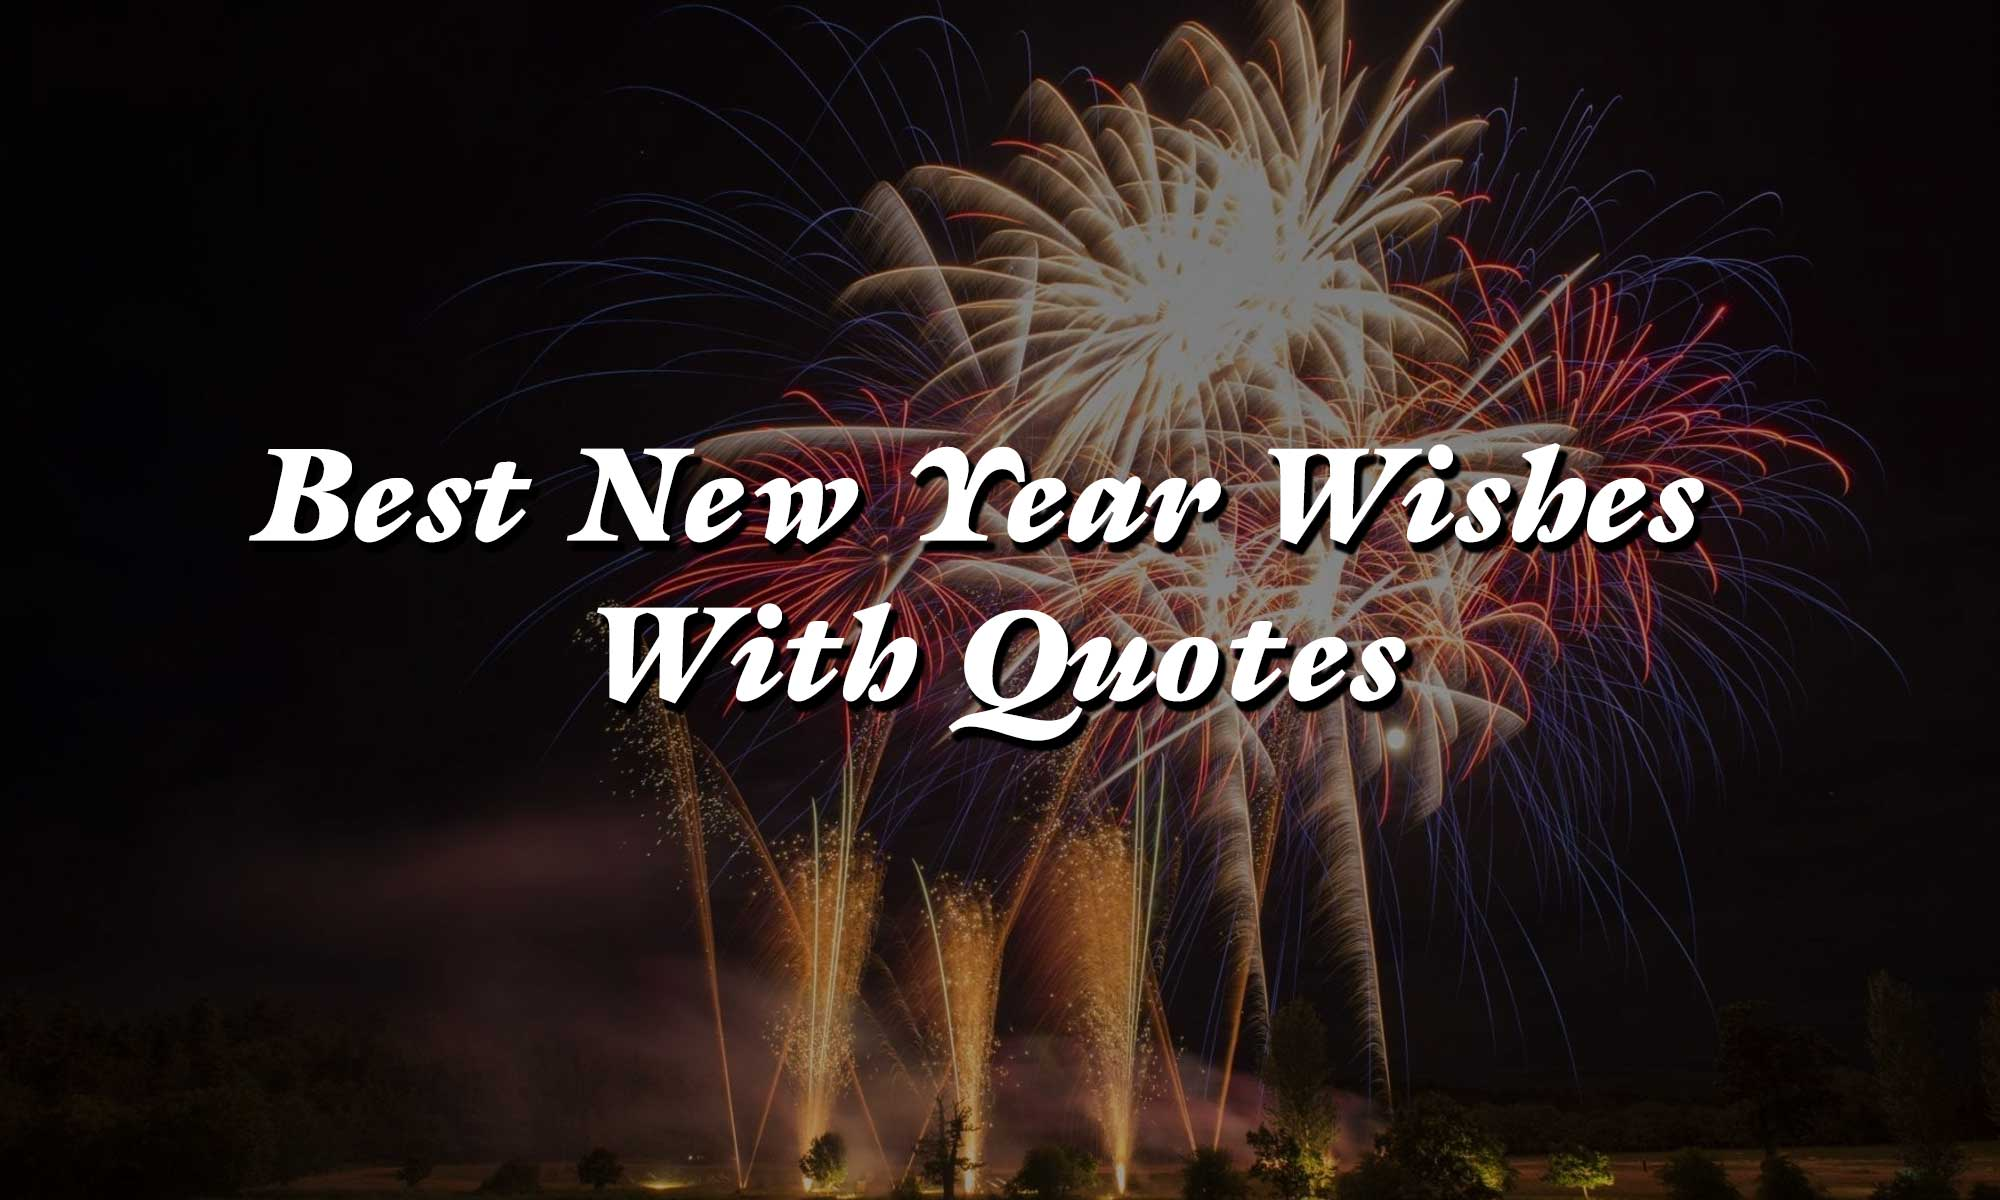 New-Year-Wishes-With-Quotes